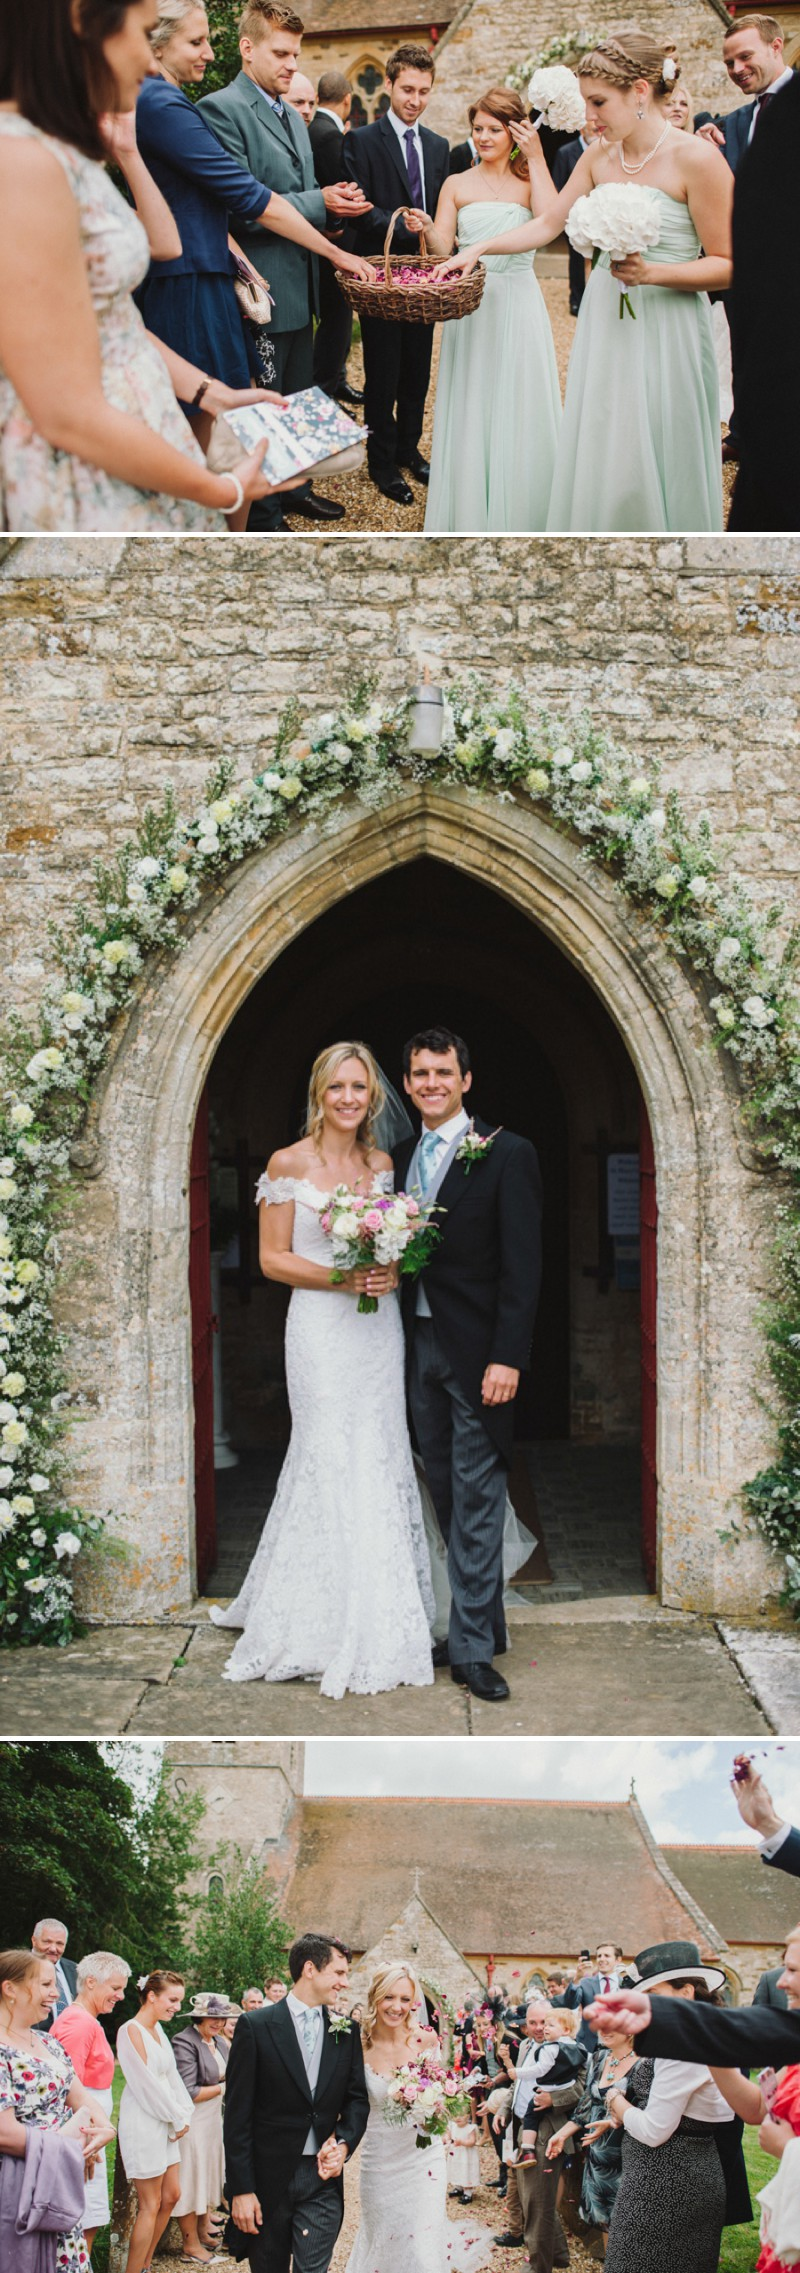 An English Back Garden Wedding With A Romona Keveza Dress And Jimmy Choos And A Pink Rose Bouquet With Mint Bridesmaid Dresses By KRAAN Wedding Photography._0006